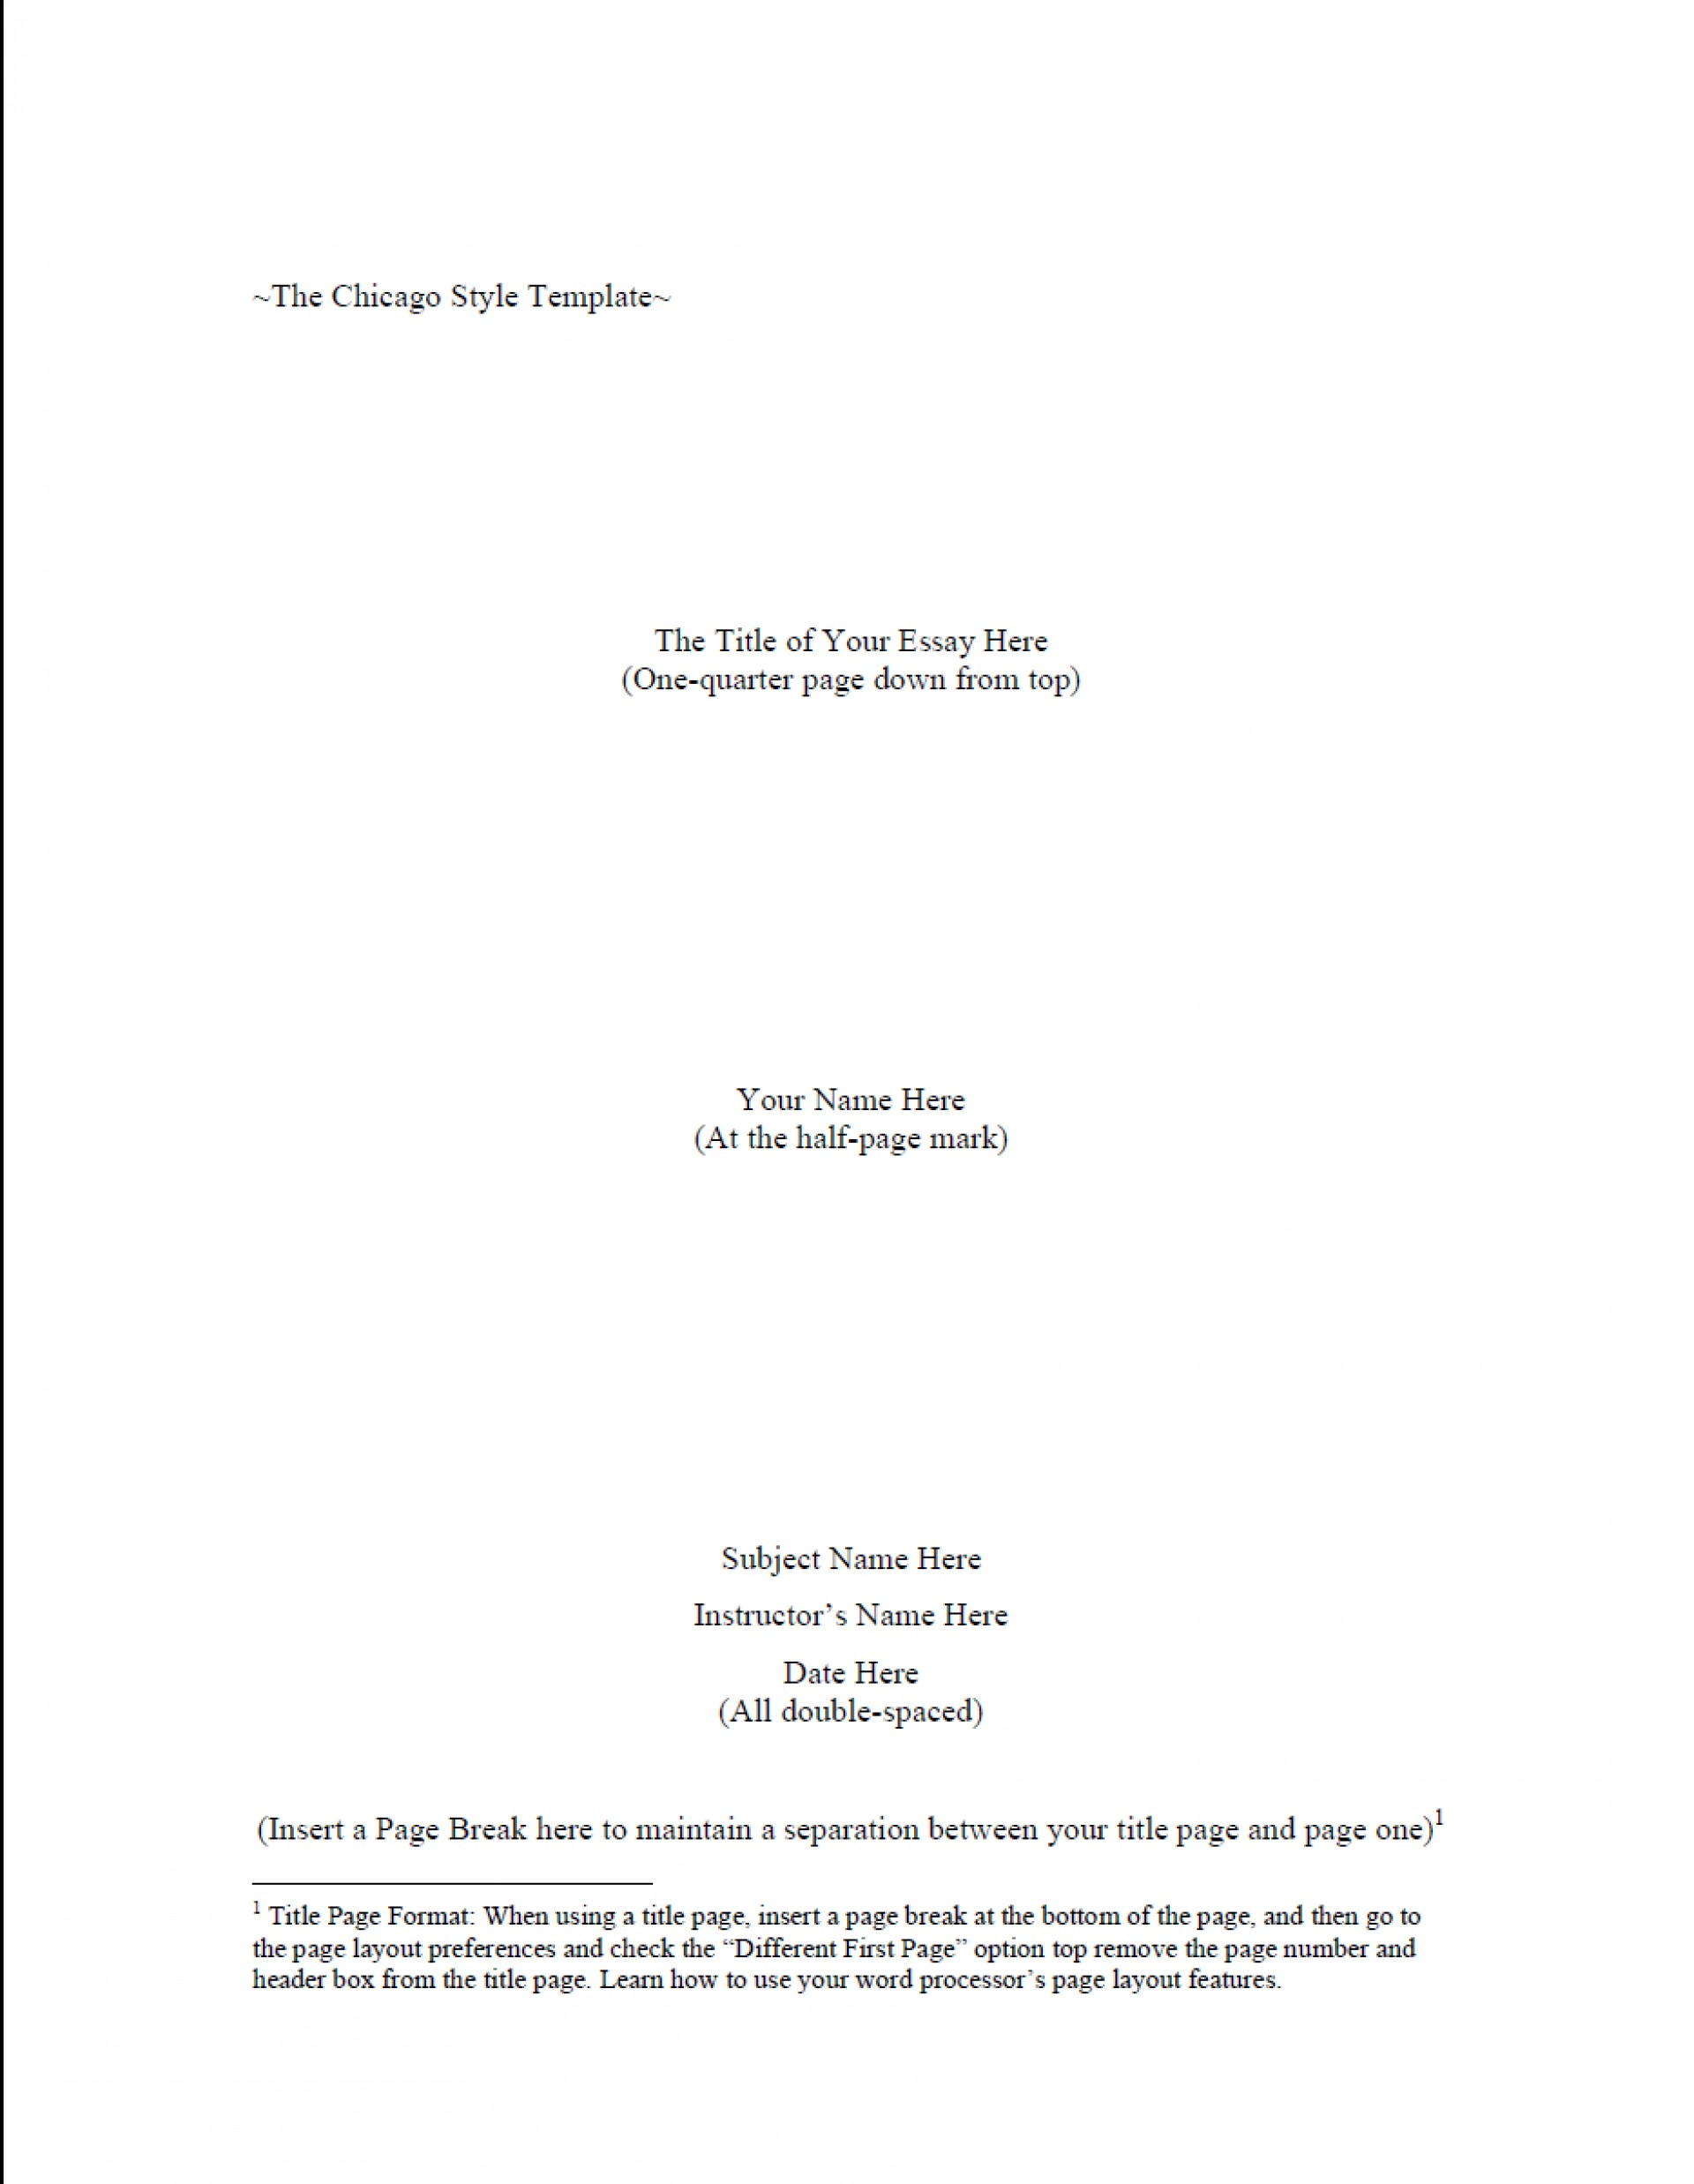 004 Chicago Style Research Paper Format Paper1 Stupendous Sample Outline 1920